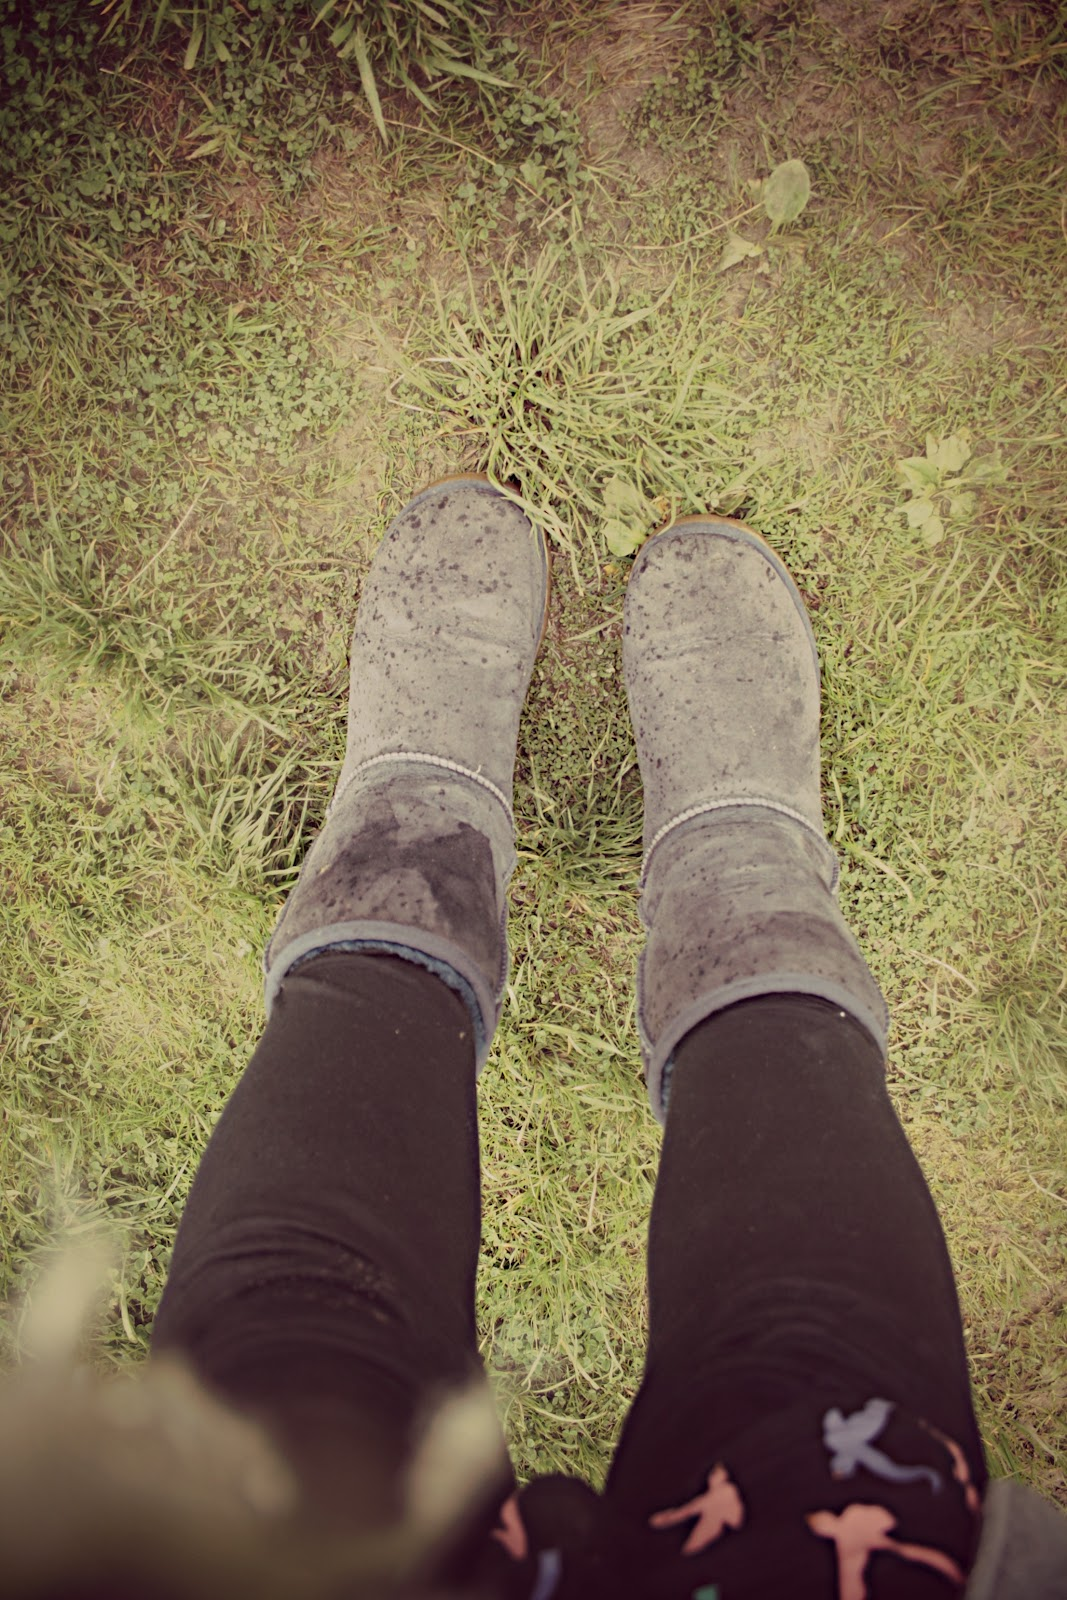 will ugg boots get ruined in the rain